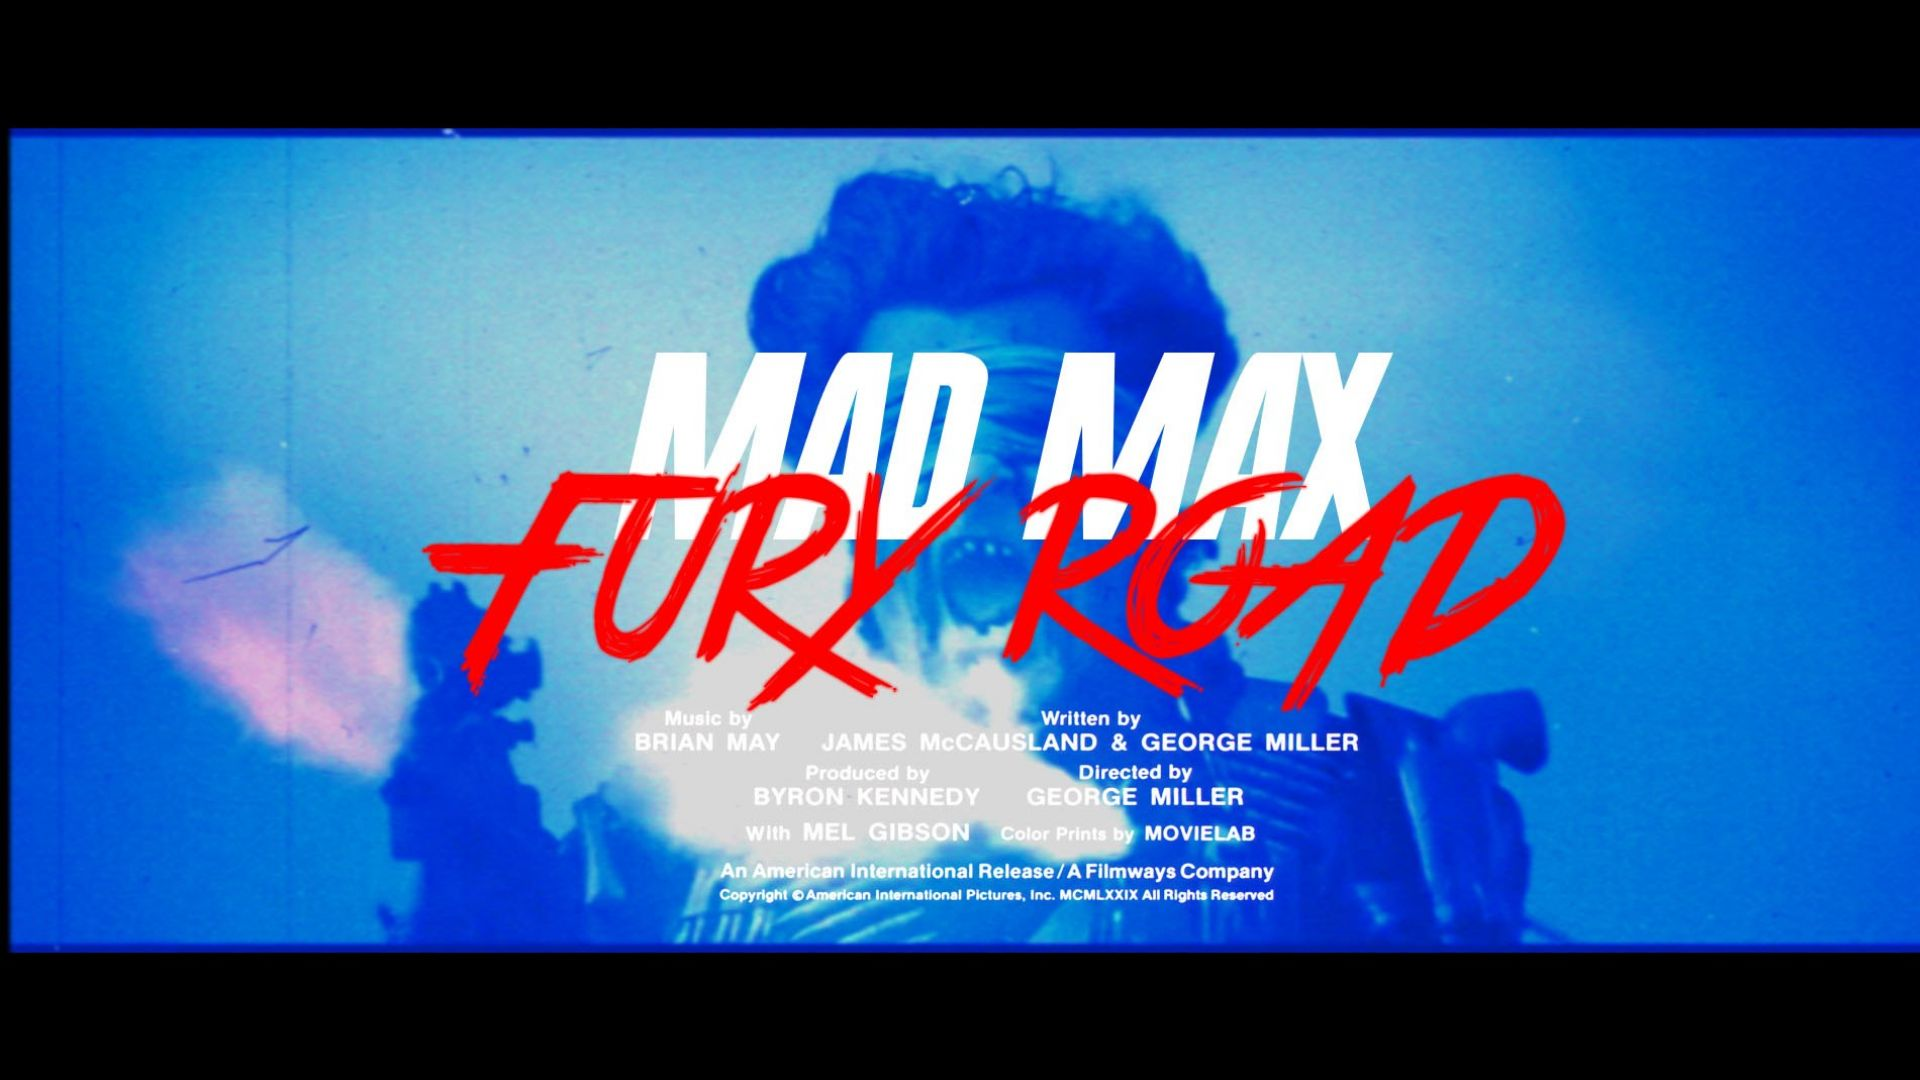 'Mad Max: Fury Road' Gets A Cool '80s Retro Trailer